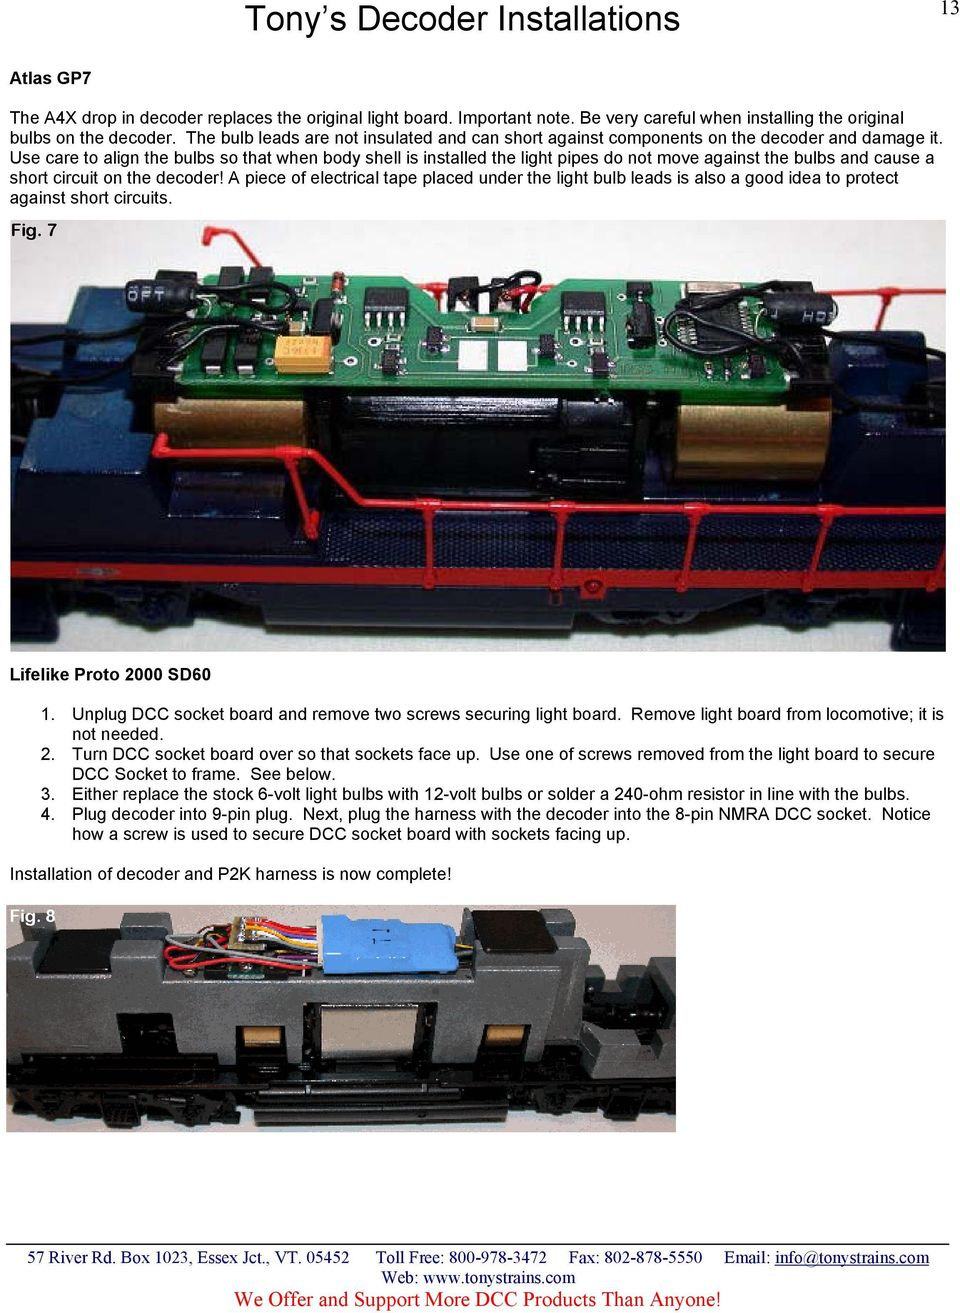 DCC Decoder and Sound Installations - PDF on